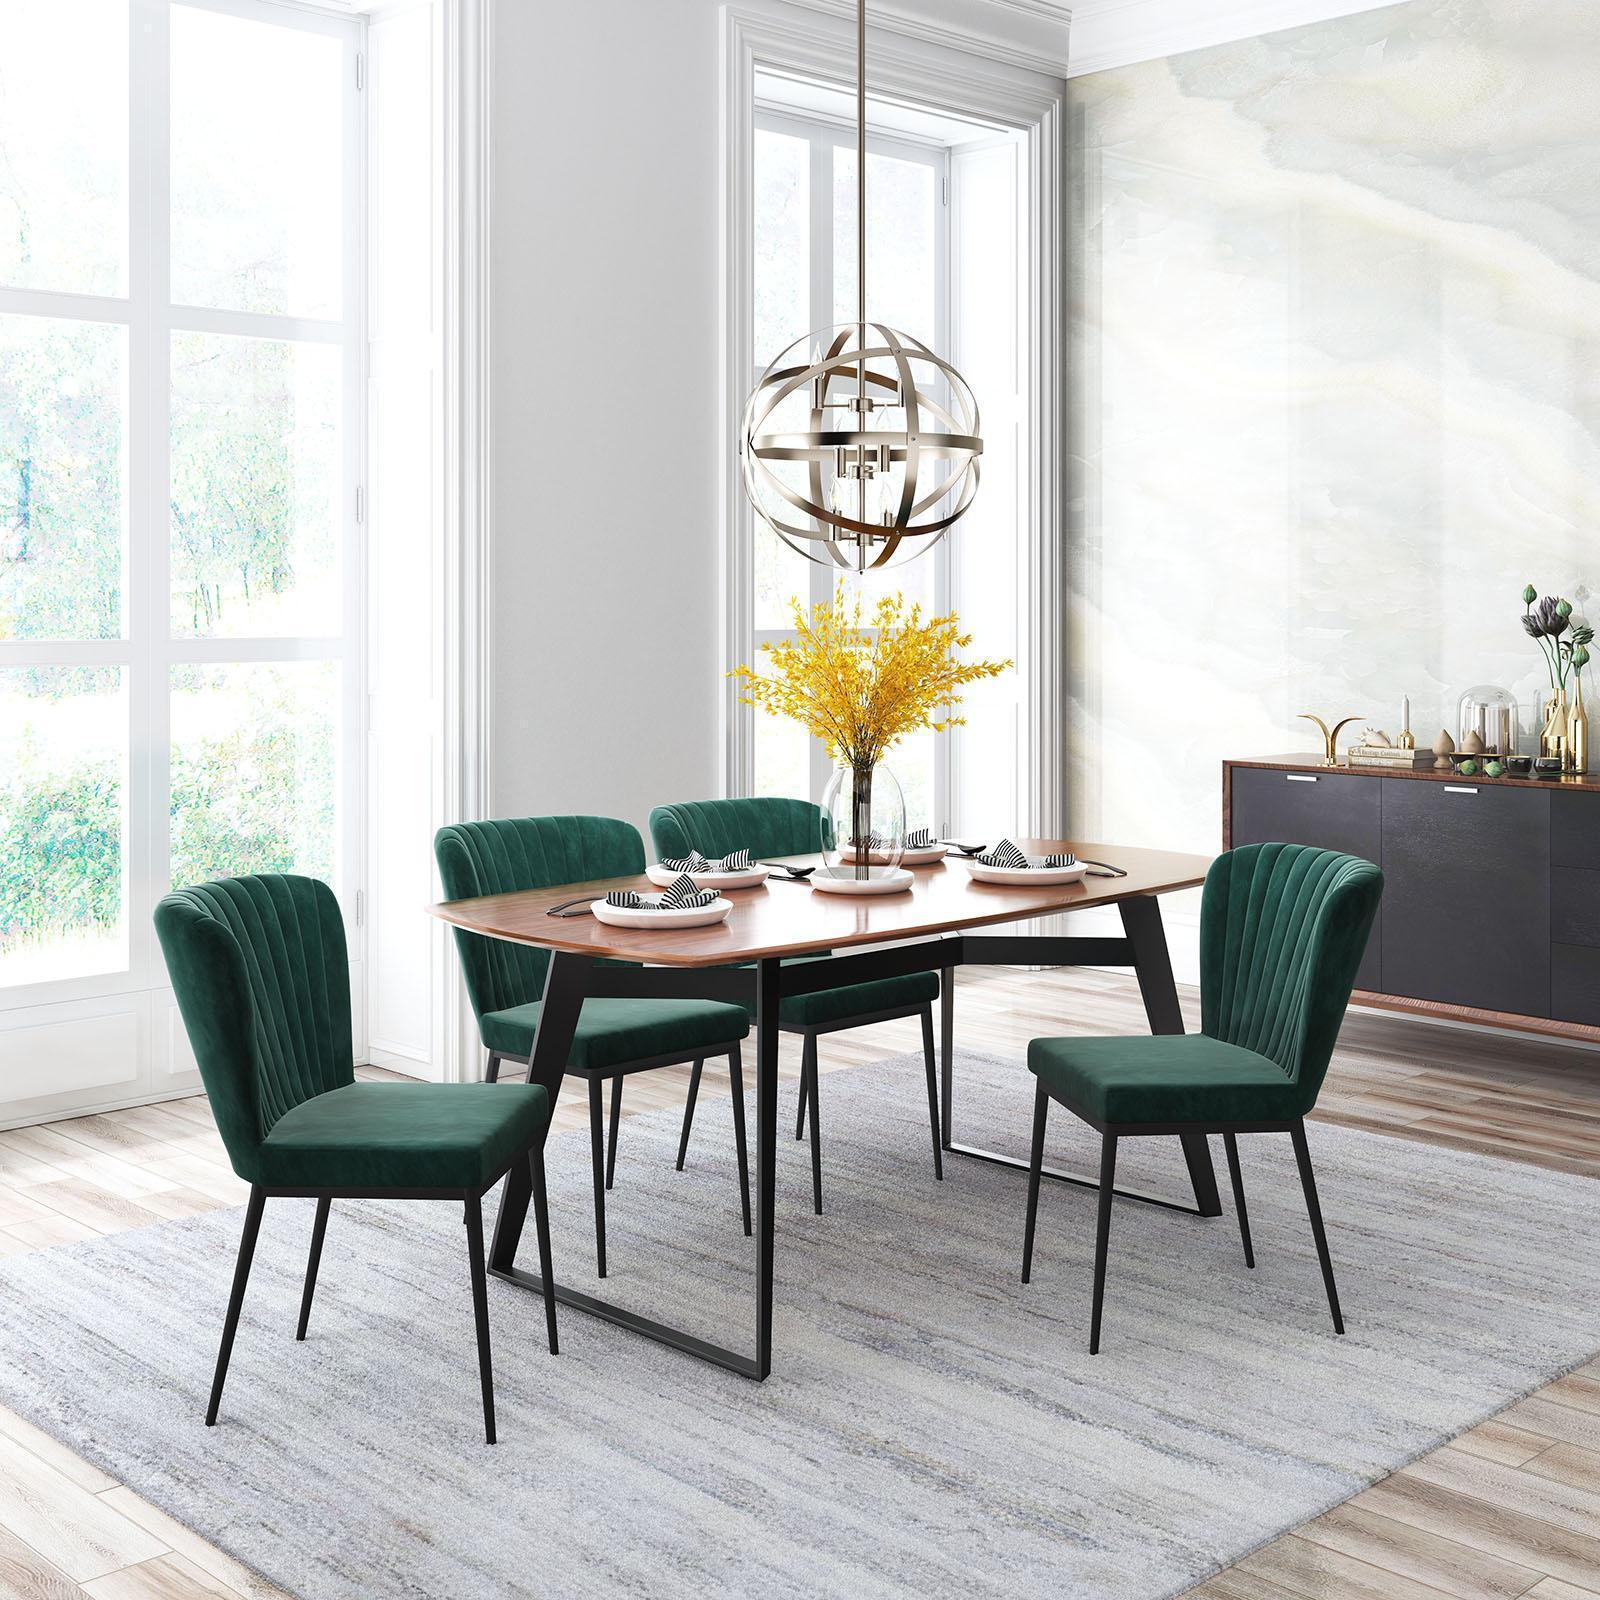 Zuo Tolivere Velvet Dining Chair Set Of 2 Zola